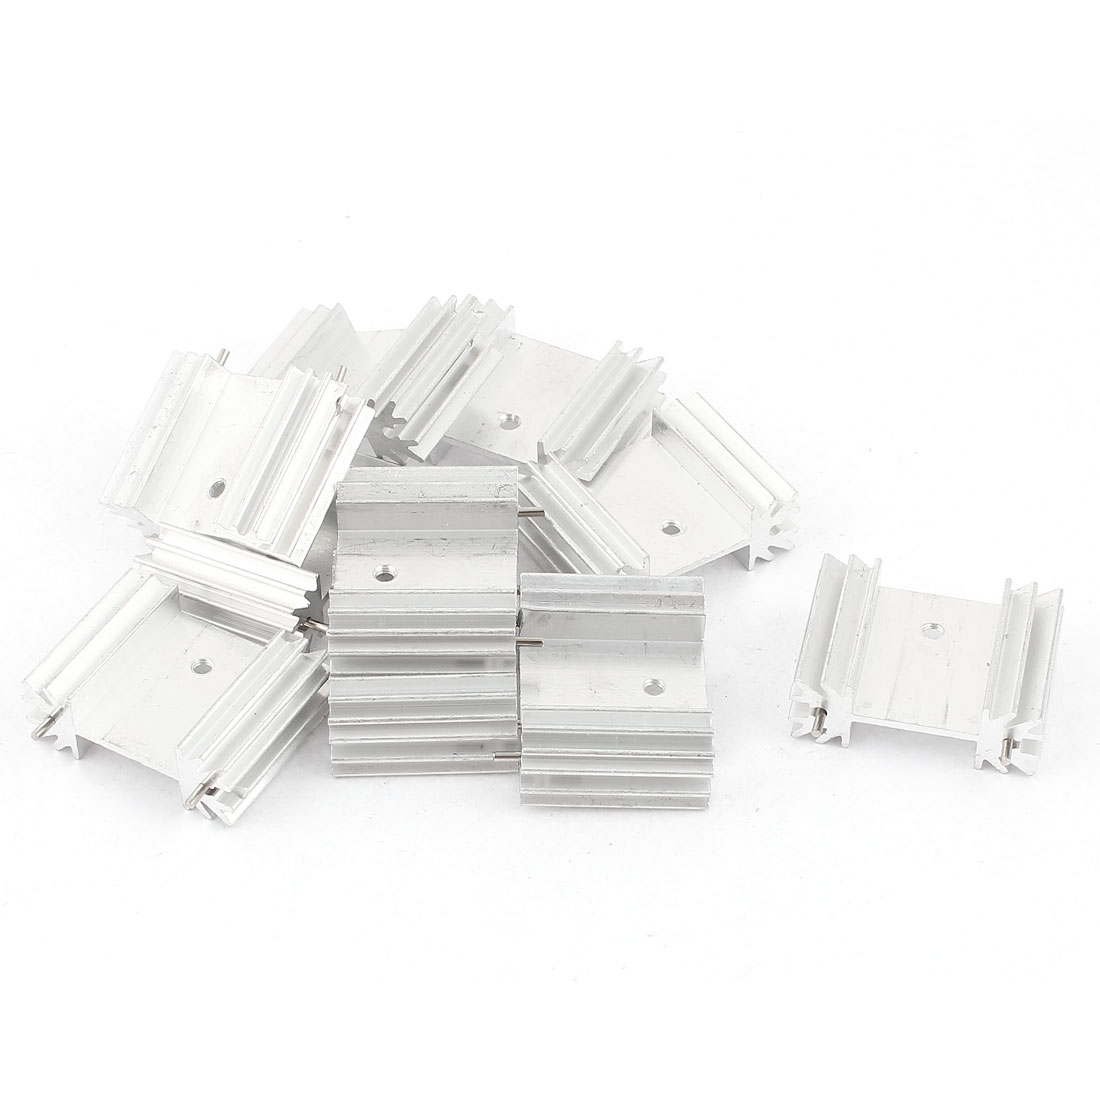 10 Pcs Screw Mount Aluminum Heatsink Heat Sink Radiator Cooling Cooler Fin w Needle 34mmx25mmx12mm Silver Tone for Mosfet IC